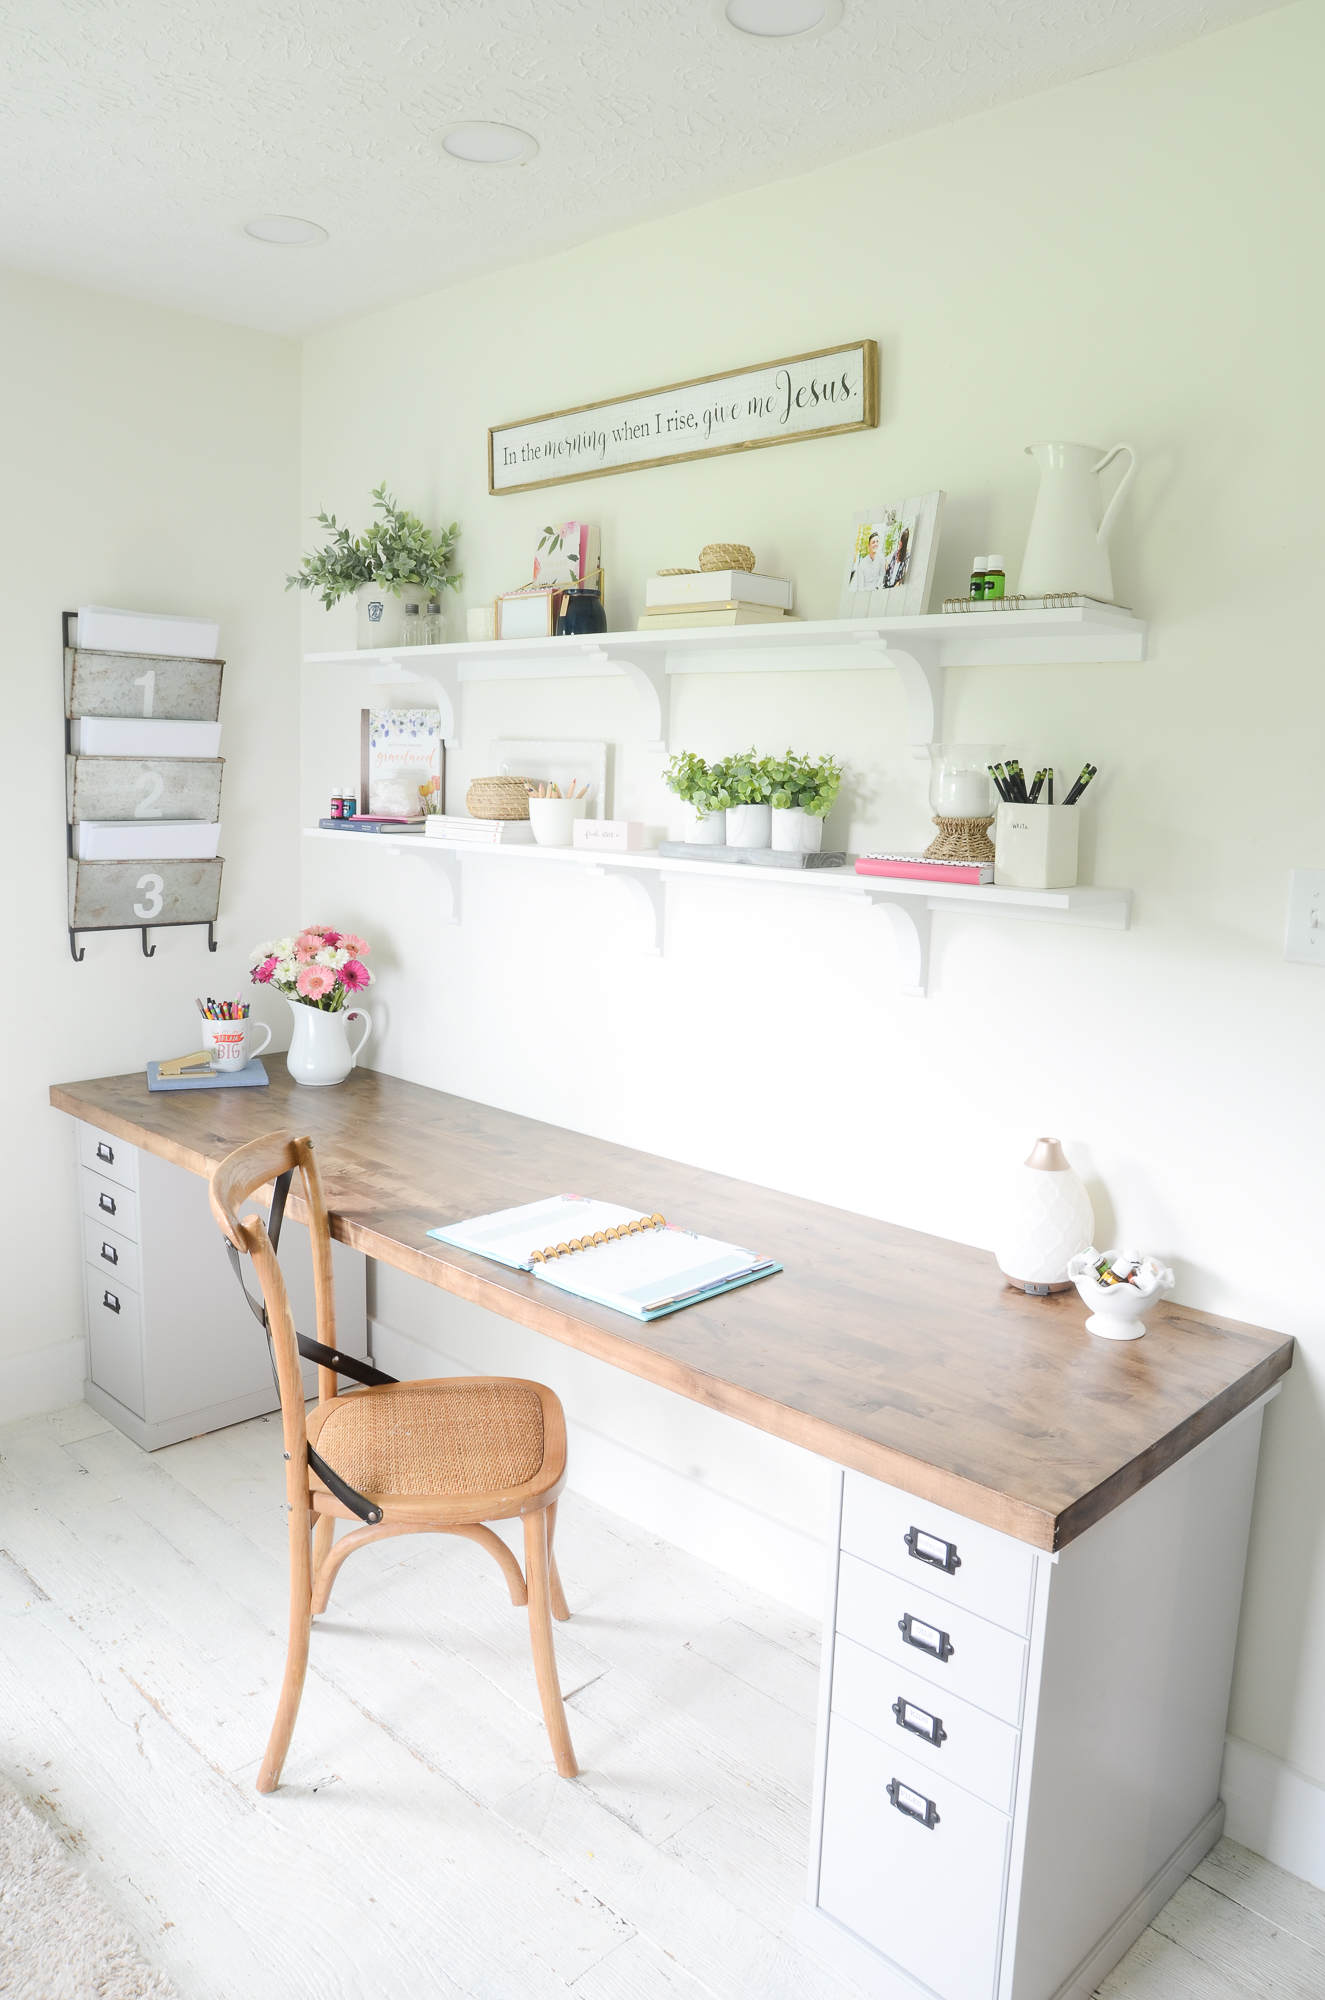 Diy Butcher Block Desk For My Home